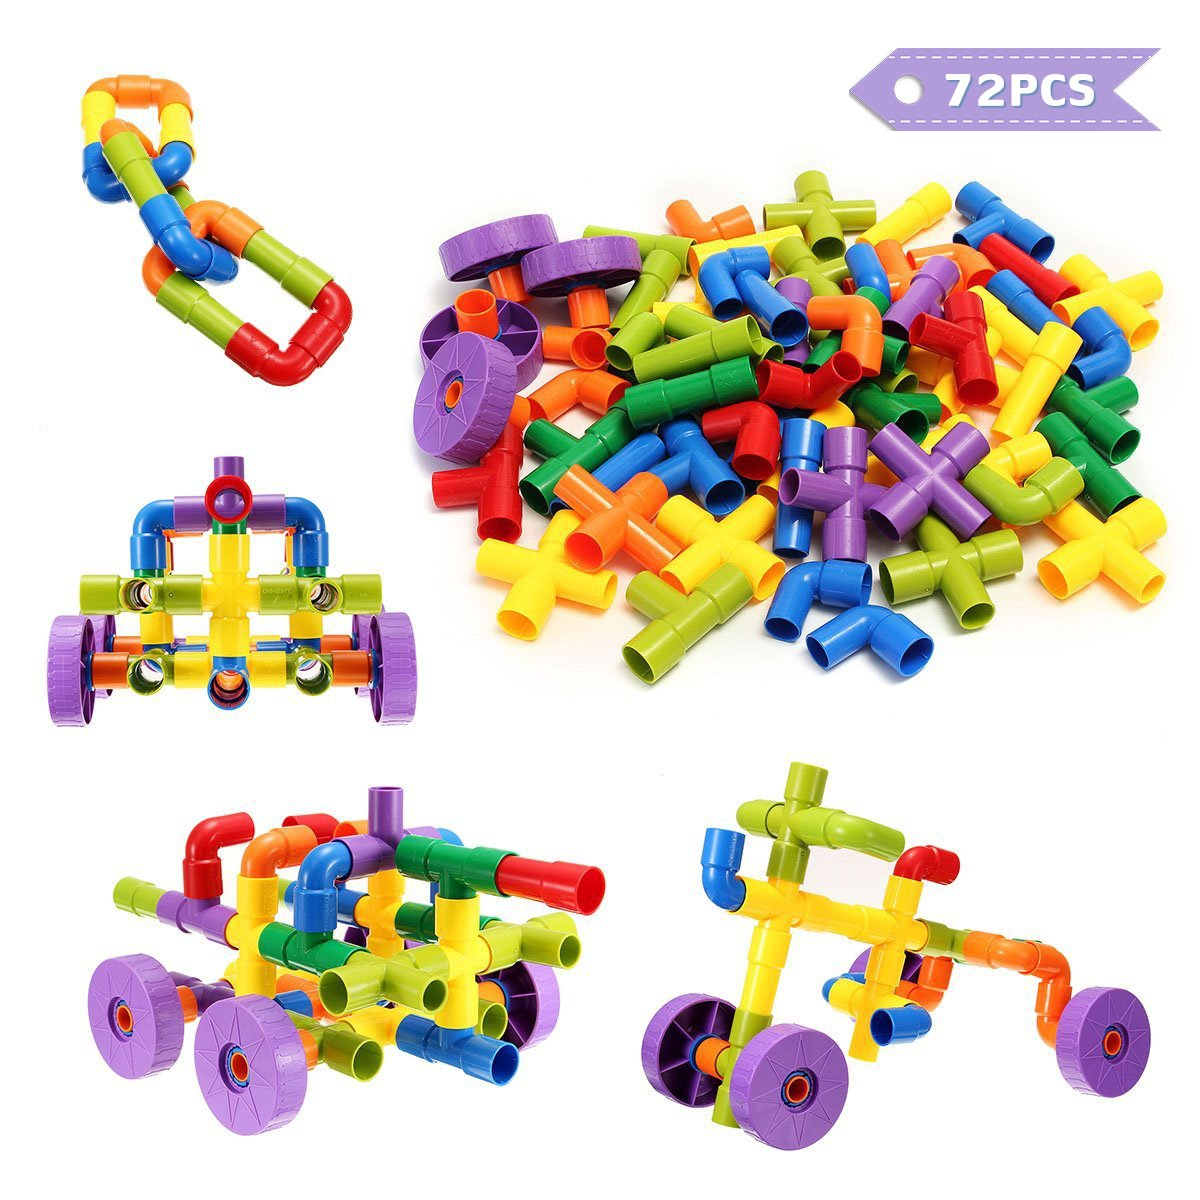 Building Blocks, FUNTOK Tube Blocks Set Assembling Toys DIY Pipeline Blocks with Wheels 72 pcs Interlocking Set Construction Building Blocks for Kids Review